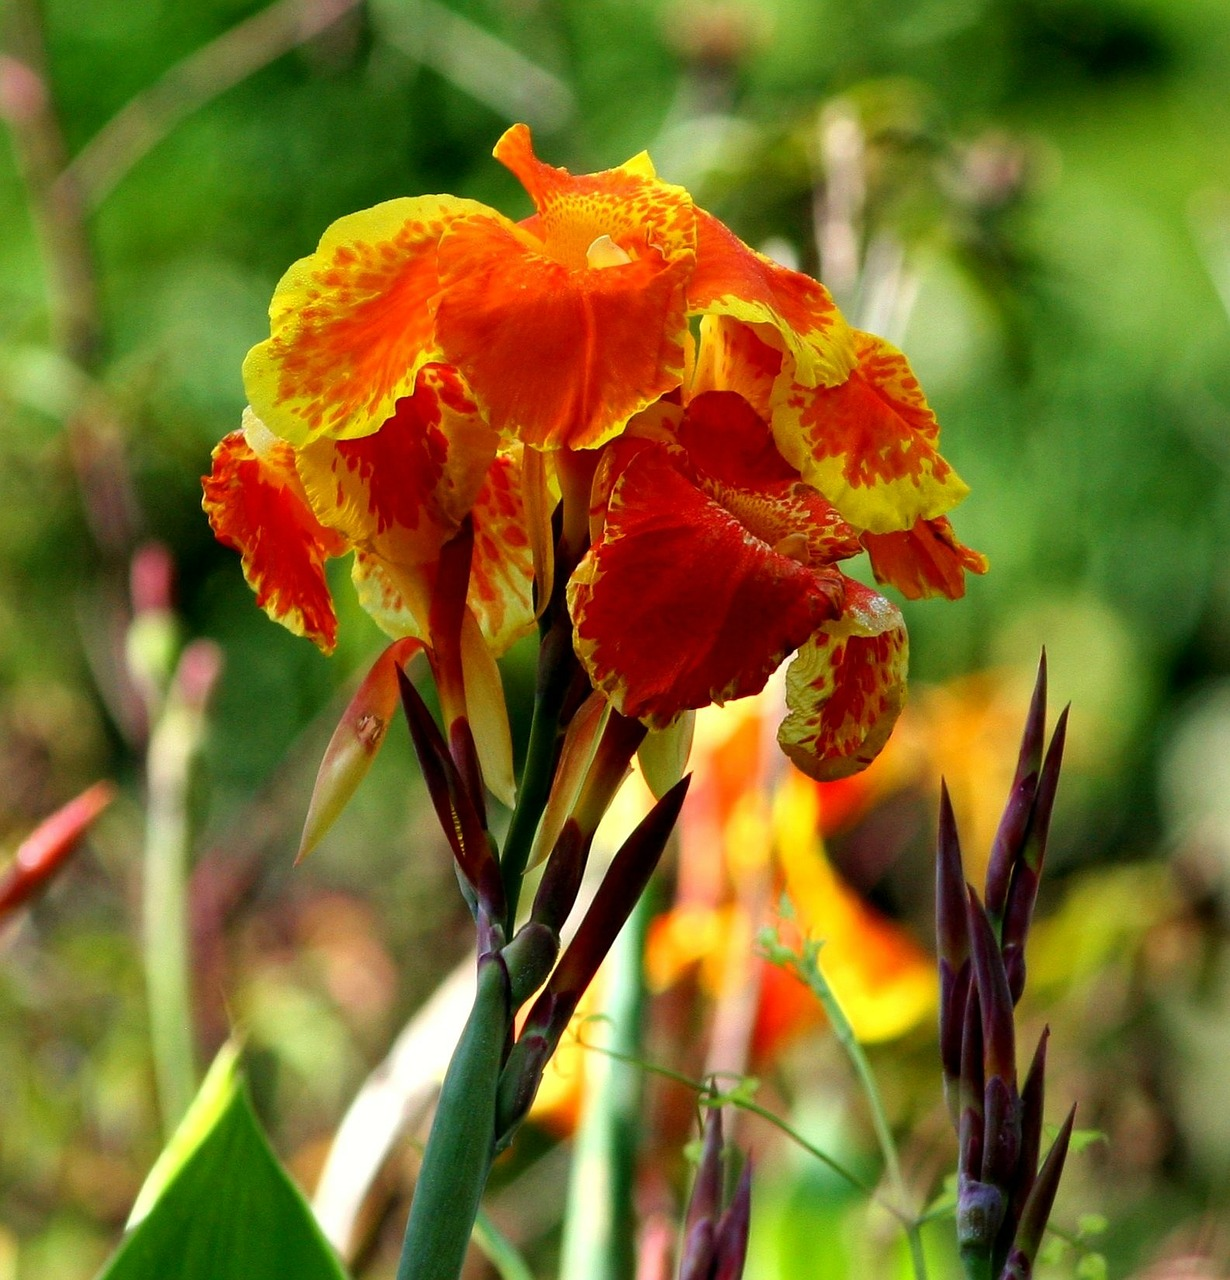 canna lily,flowers,orange,garden,plant,pretty,fragrant,free pictures, free photos, free images, royalty free, free illustrations, public domain